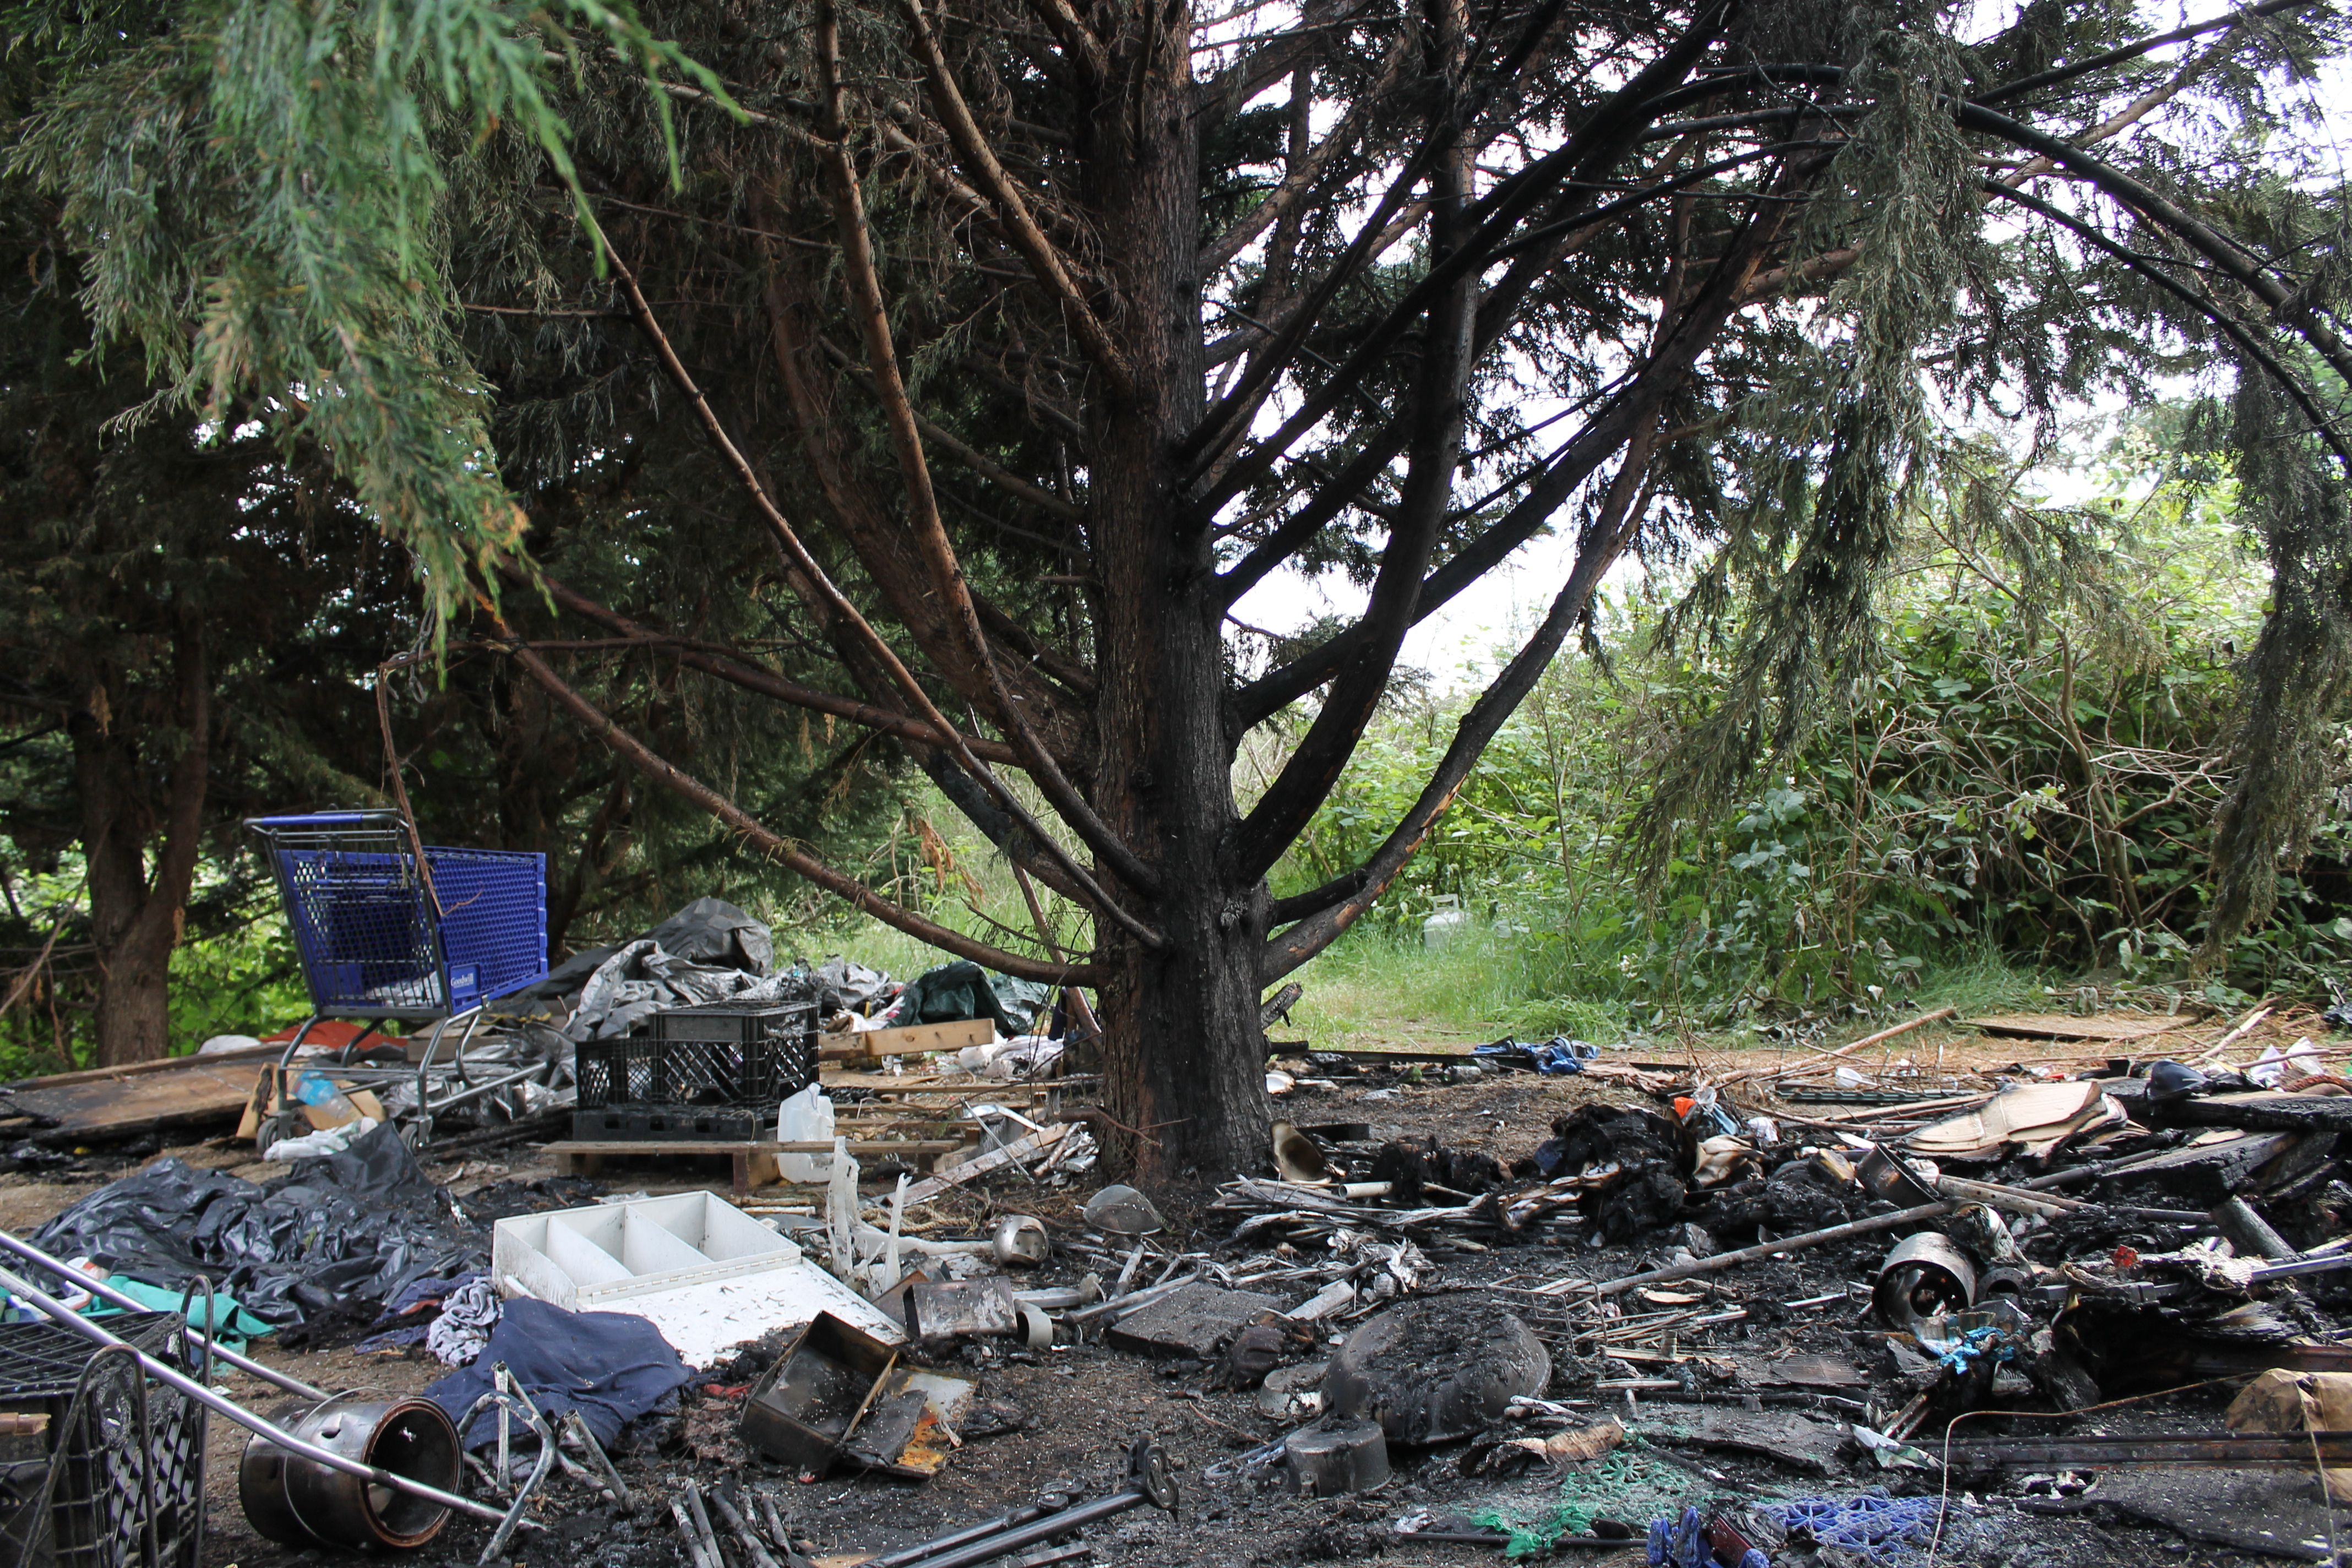 Homeless encampment site of fire, May 31 011